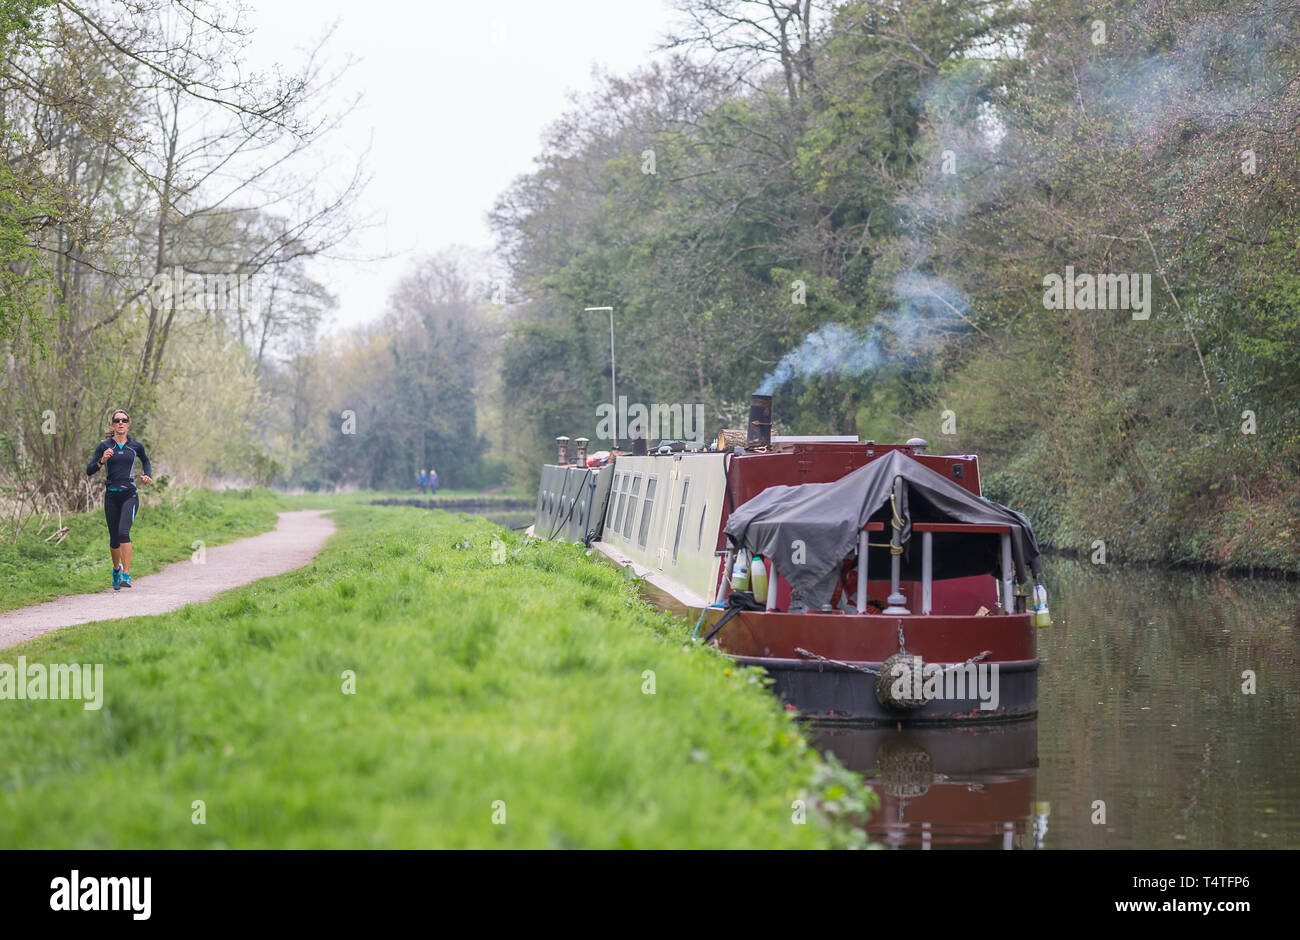 Landscape shot of narrowboat with smoking chimney moored alongside UK canal with female runner (front view) jogging along canal towpath. - Stock Image